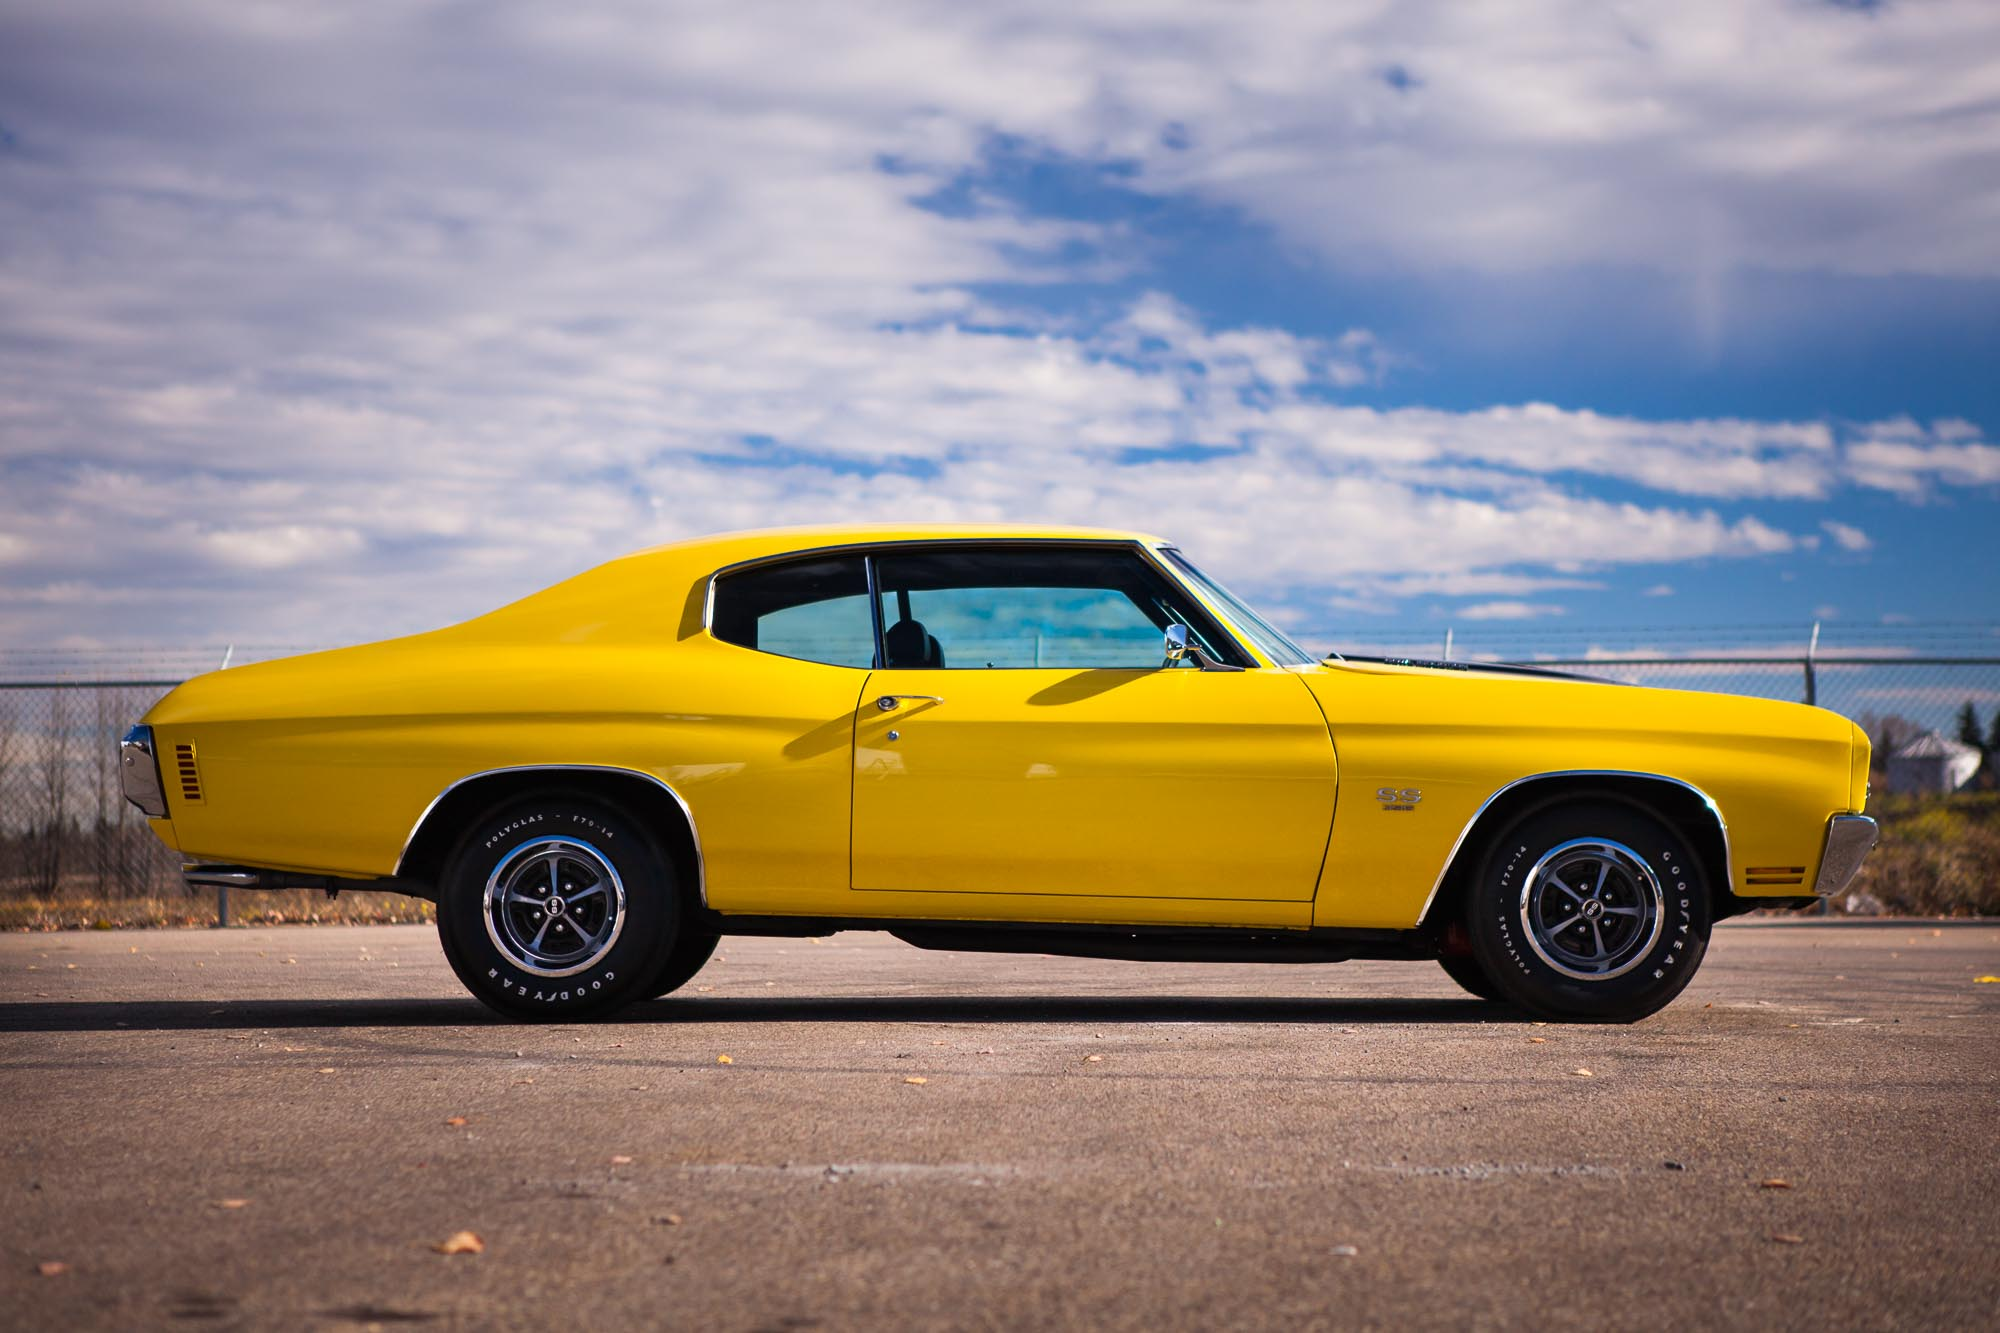 1970 chevelle ss 396 - for sale